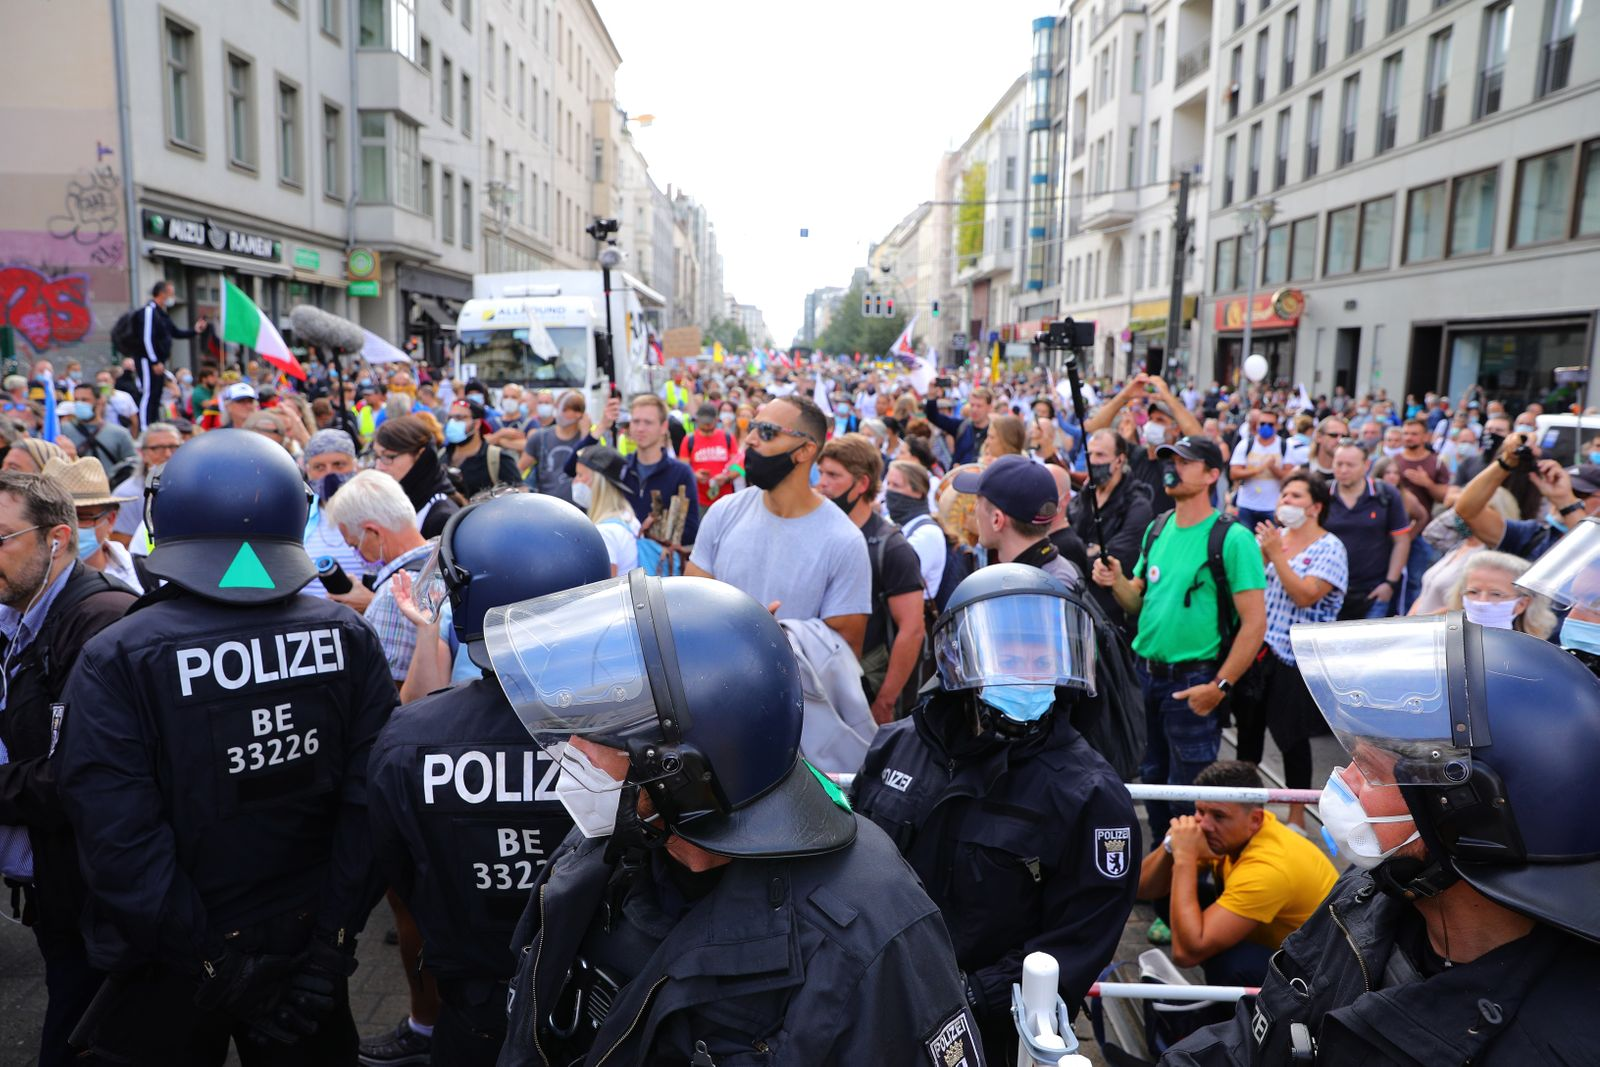 Coronavirus Skeptics And Right-Wing Extremists Protest In Berlin